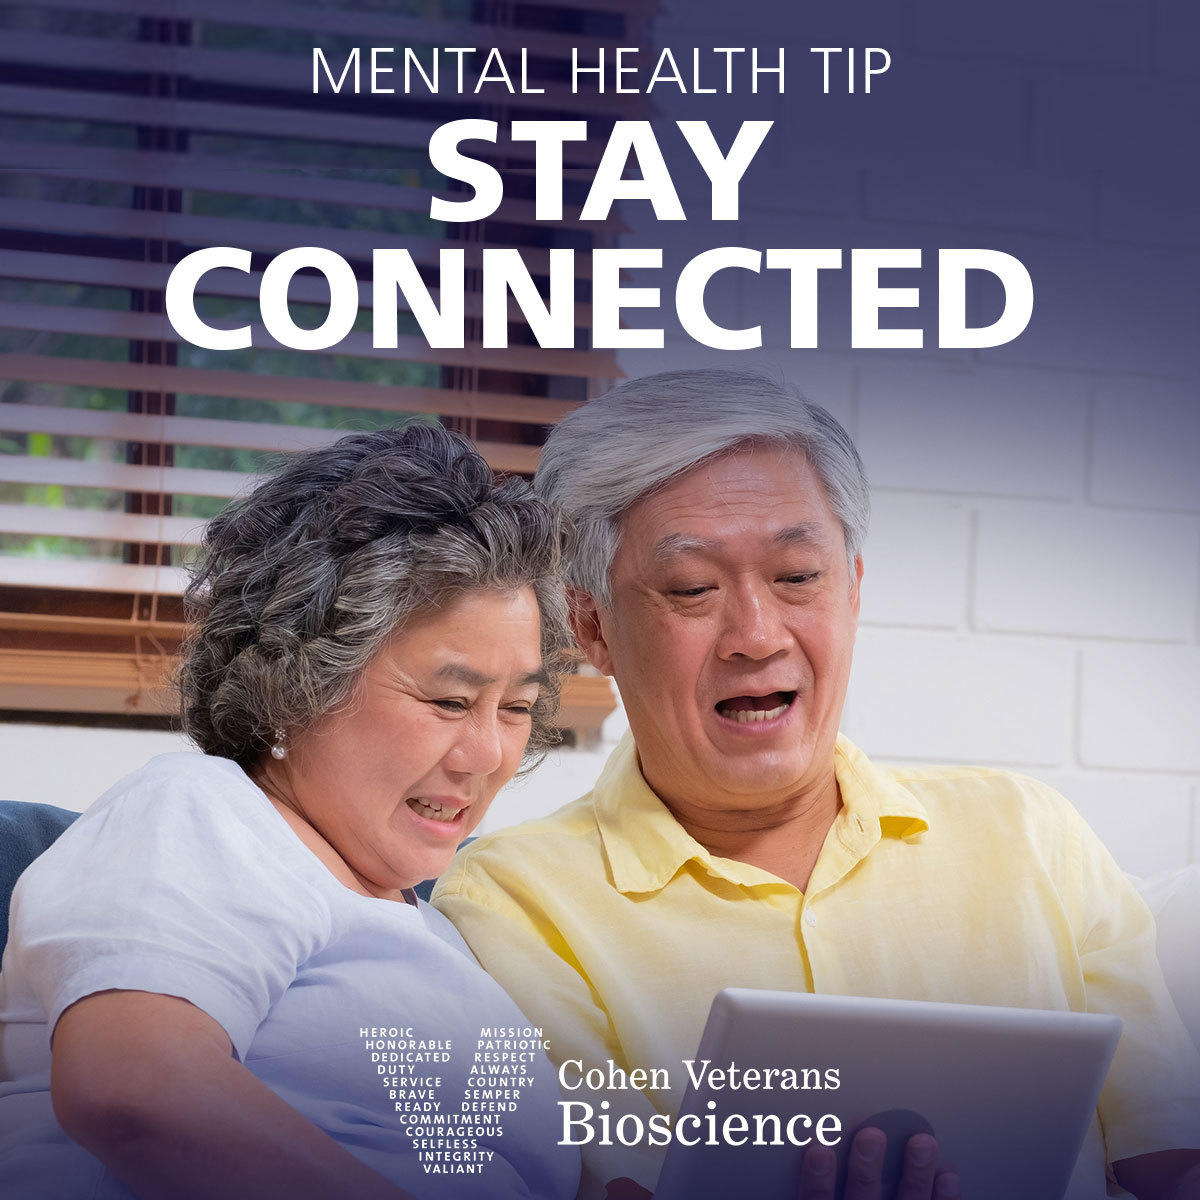 Mental Health Tip: Stay Connected